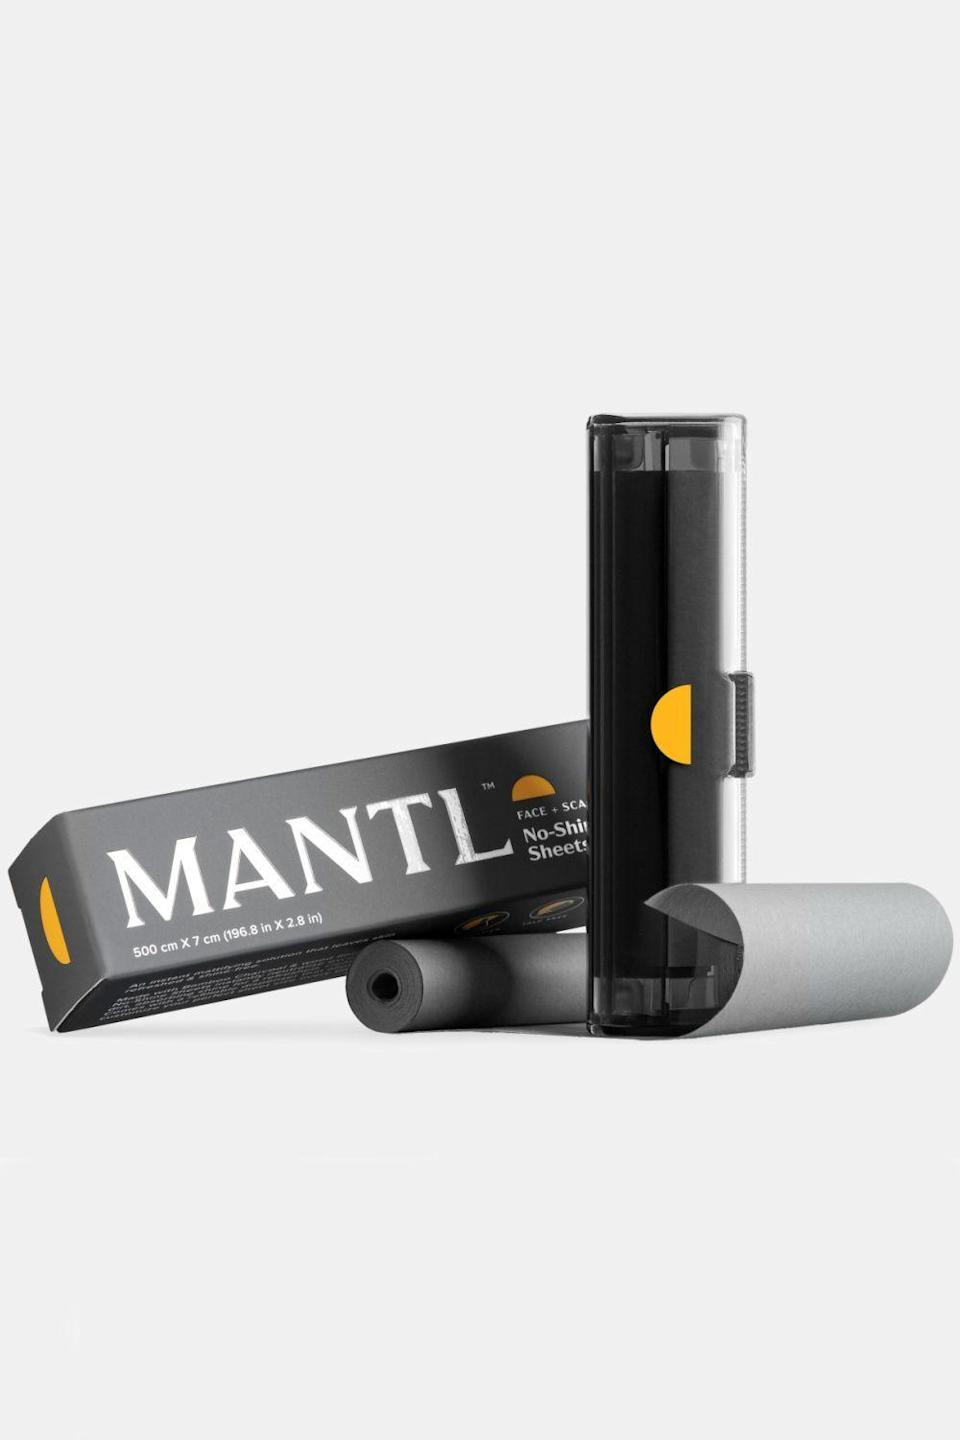 """<p>mantl.co</p><p><strong>$10.00</strong></p><p><a href=""""https://go.redirectingat.com?id=74968X1596630&url=https%3A%2F%2Fmantl.co%2Fproducts%2Fno-shine-sheets&sref=https%3A%2F%2Fwww.cosmopolitan.com%2Fstyle-beauty%2Fbeauty%2Fg35020776%2Fbest-oil-blotting-paper-sheets%2F"""" rel=""""nofollow noopener"""" target=""""_blank"""" data-ylk=""""slk:Shop Now"""" class=""""link rapid-noclick-resp"""">Shop Now</a></p><p>Designed for use on both the face and <a href=""""https://www.cosmopolitan.com/style-beauty/beauty/a30708845/how-to-make-hair-less-greasy-scalp-training/"""" rel=""""nofollow noopener"""" target=""""_blank"""" data-ylk=""""slk:scalp"""" class=""""link rapid-noclick-resp"""">scalp</a>, this compact cartridge with <strong>bamboo charcoal blotting paper absorbs oil and shine from all over</strong>. Pro tip: For the best results, press and hold the paper against your skin instead of wiping it with abandon.</p>"""